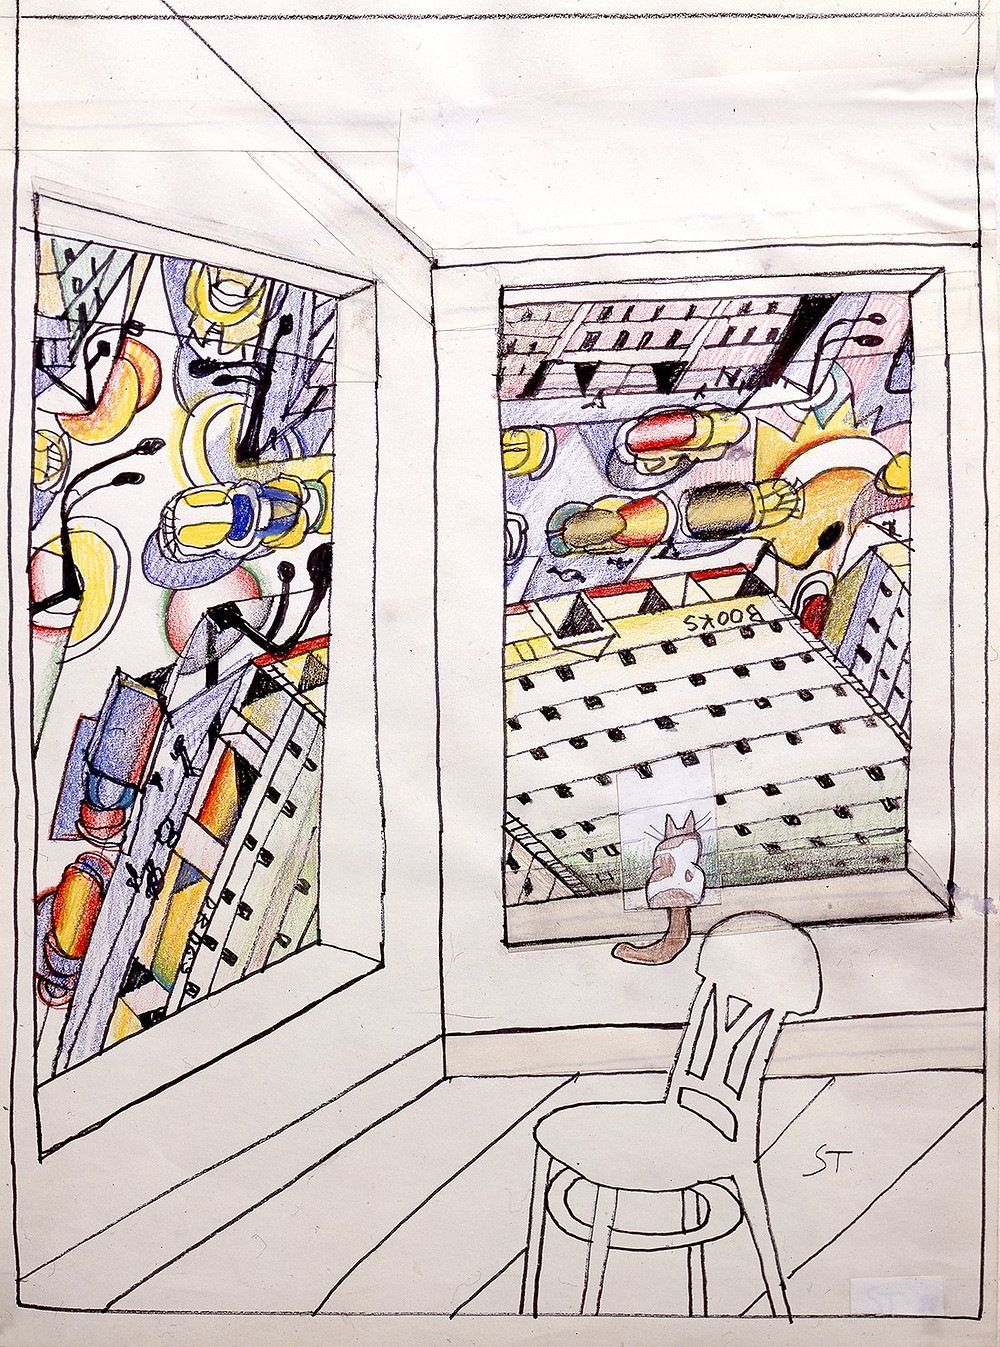 Saul Steinberg, 'Looking Down', 1988 Courtesy: Pace Gallery